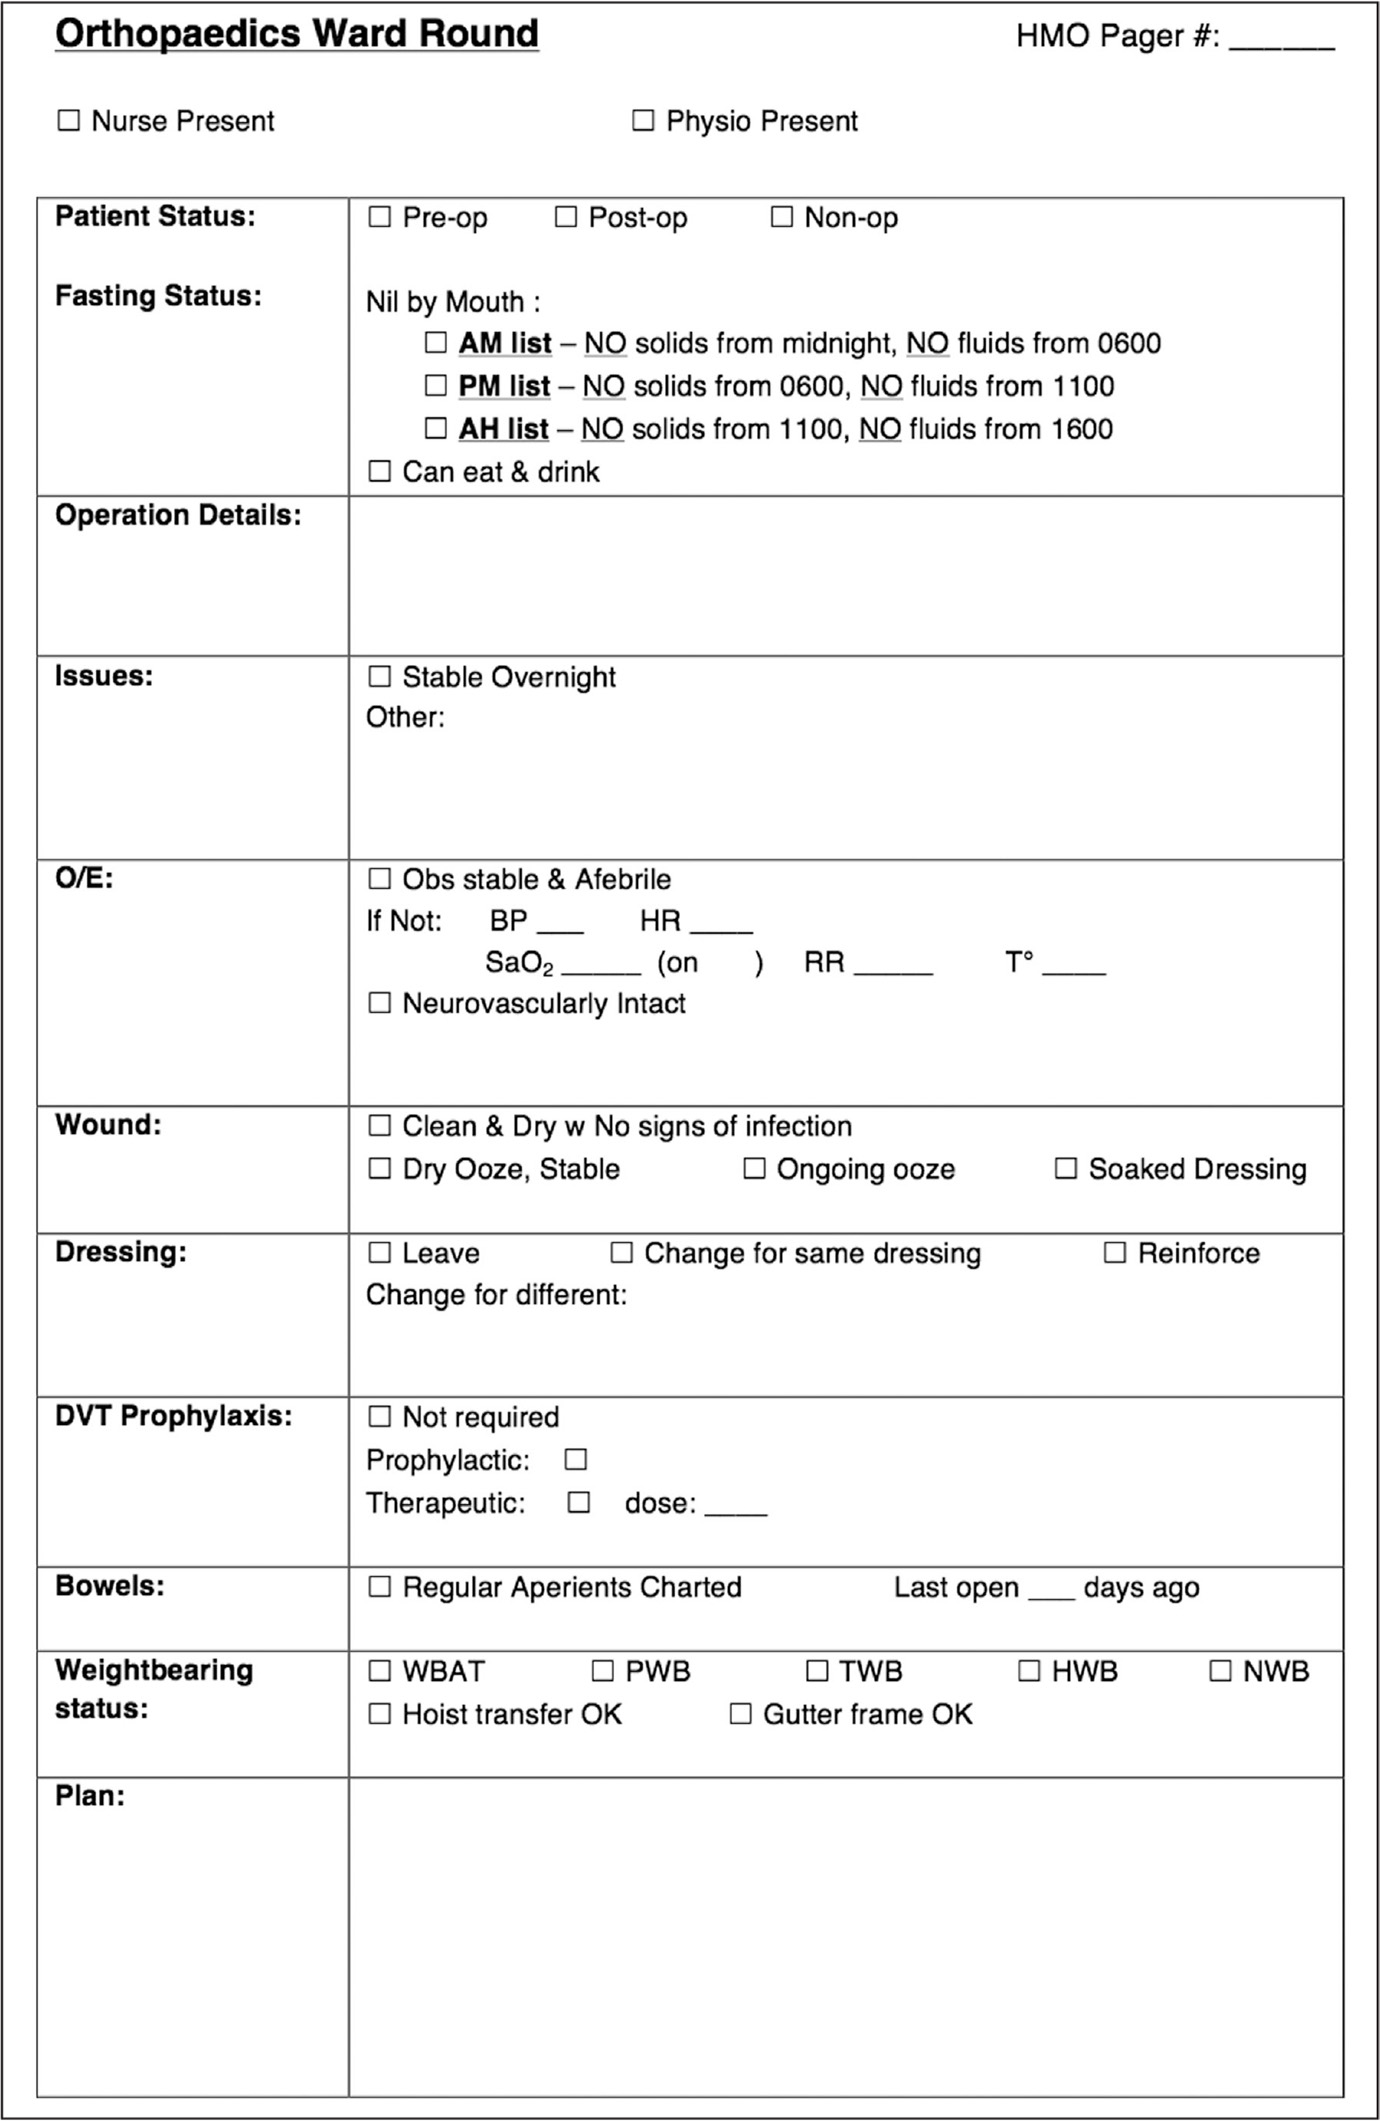 The checklist used by the medical staff during orthopedic ward rounds. It was easy to examine, mainly involved ticking off the appropriate boxes, and required minimal further documentation. Abbreviations: AH, after hours; BP, blood pressure; DVT, deep venous thromboembolism; HMO, health maintenance organization; HR, heart rate; HWB, heel weight bearing; Non-op, nonoperative; NWB, non-weight bearing; O/E, on examination; Obs, observations/vital signs; Post-op, postoperative; Pre-op, preoperative; PWB, protected weight bearing; RR, respiratory rate; SaO2, arterial oxygen saturation; T, temperature; TWB, touch weight bearing; WBAT, weight bearing as tolerated.